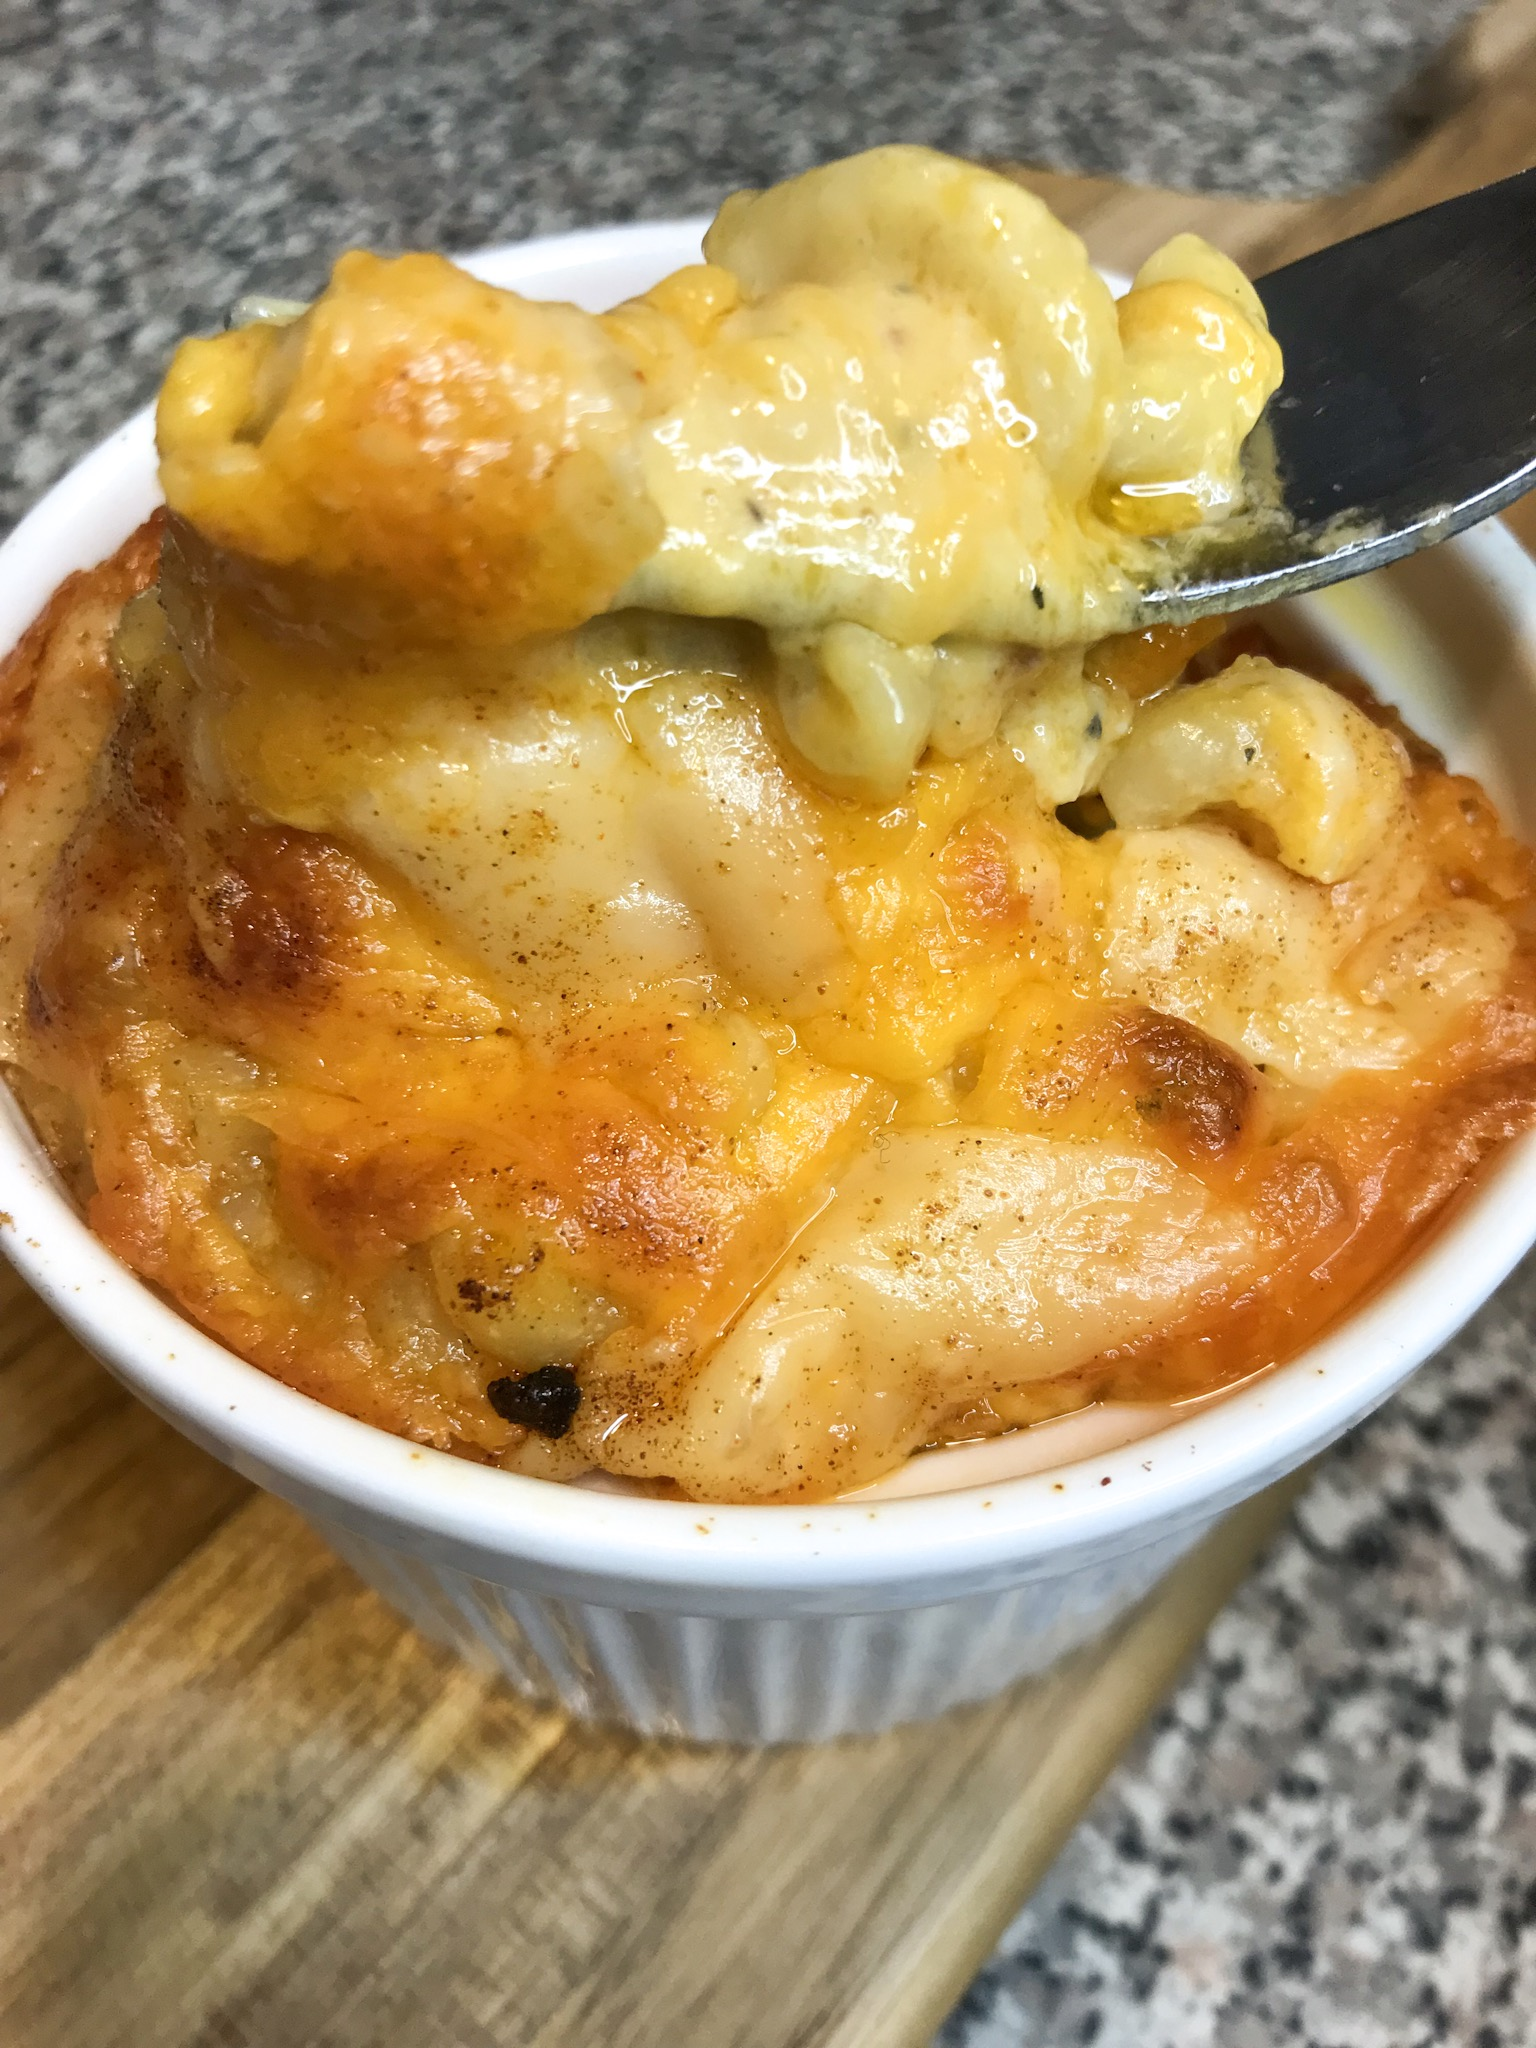 Personal Mac and cheese